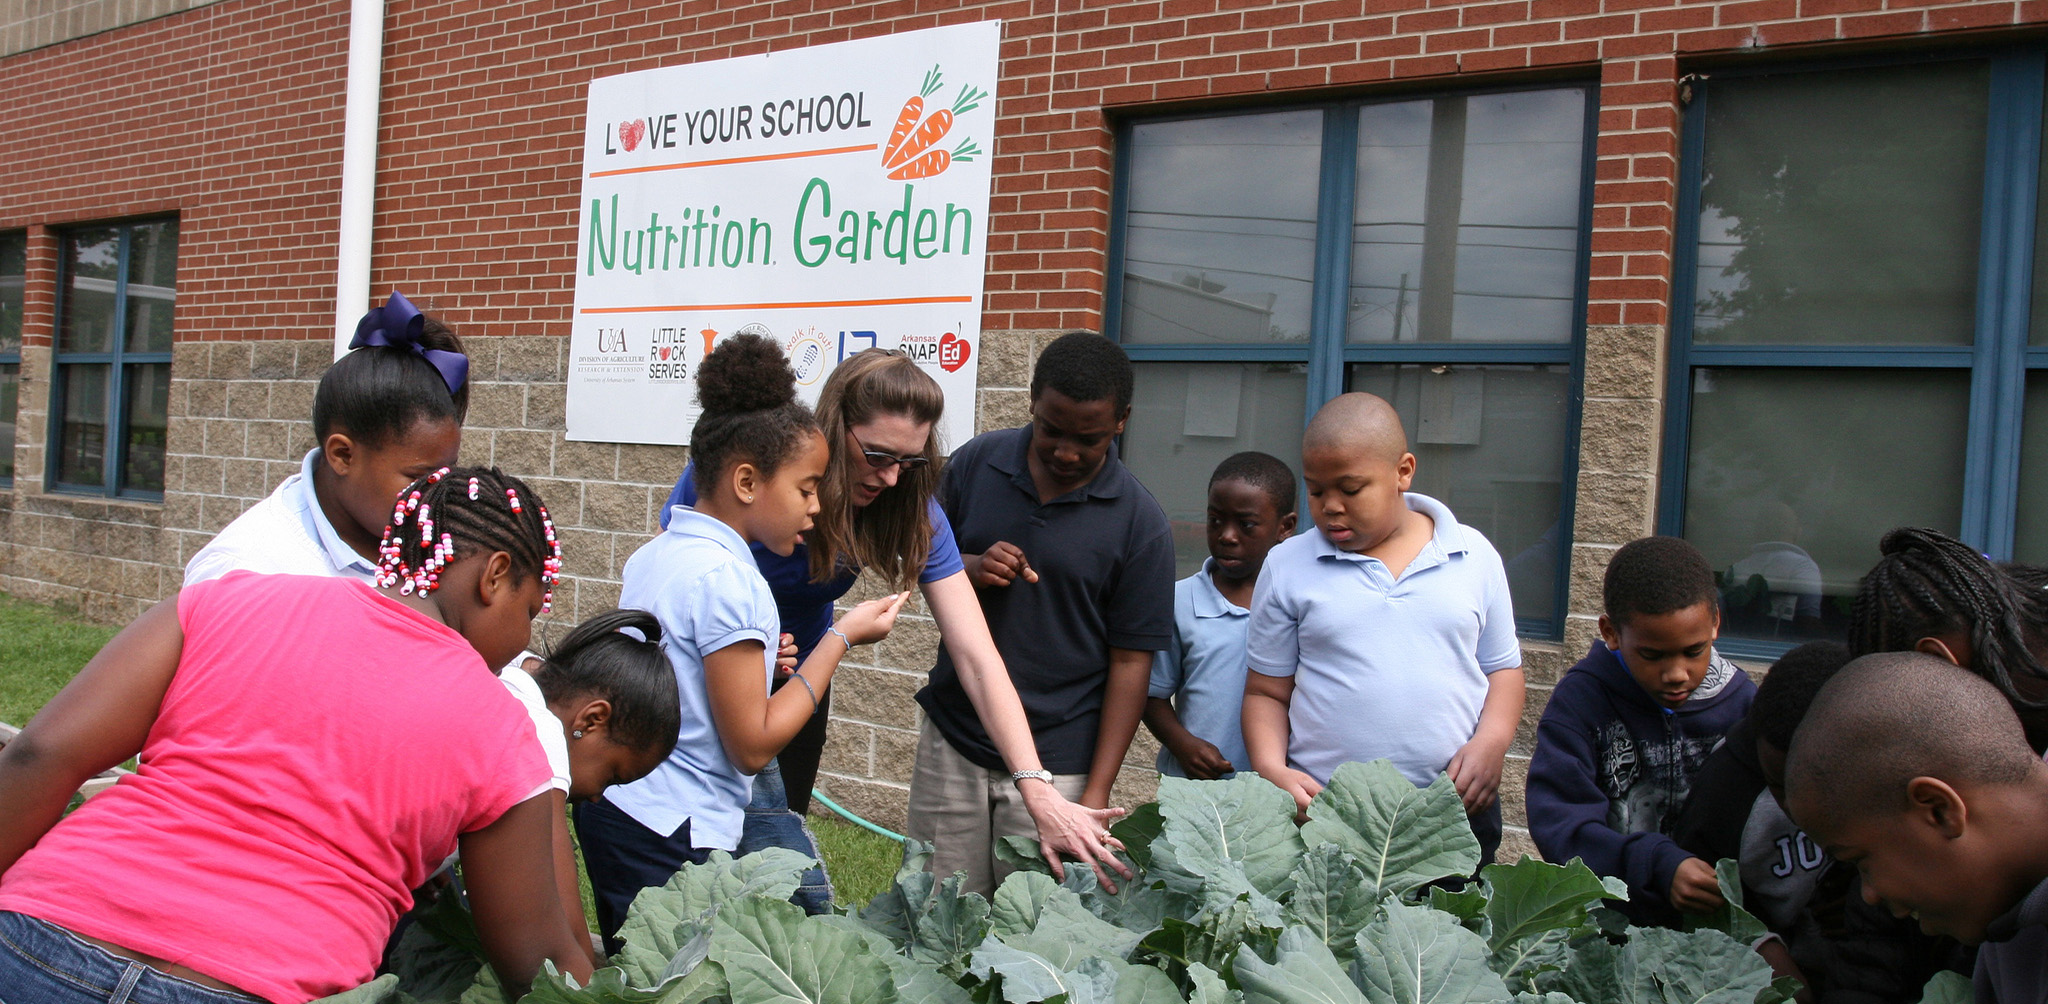 Instructor with young students outside working in a school garden. Photo by the Arkansas Cooperative Extension Service.